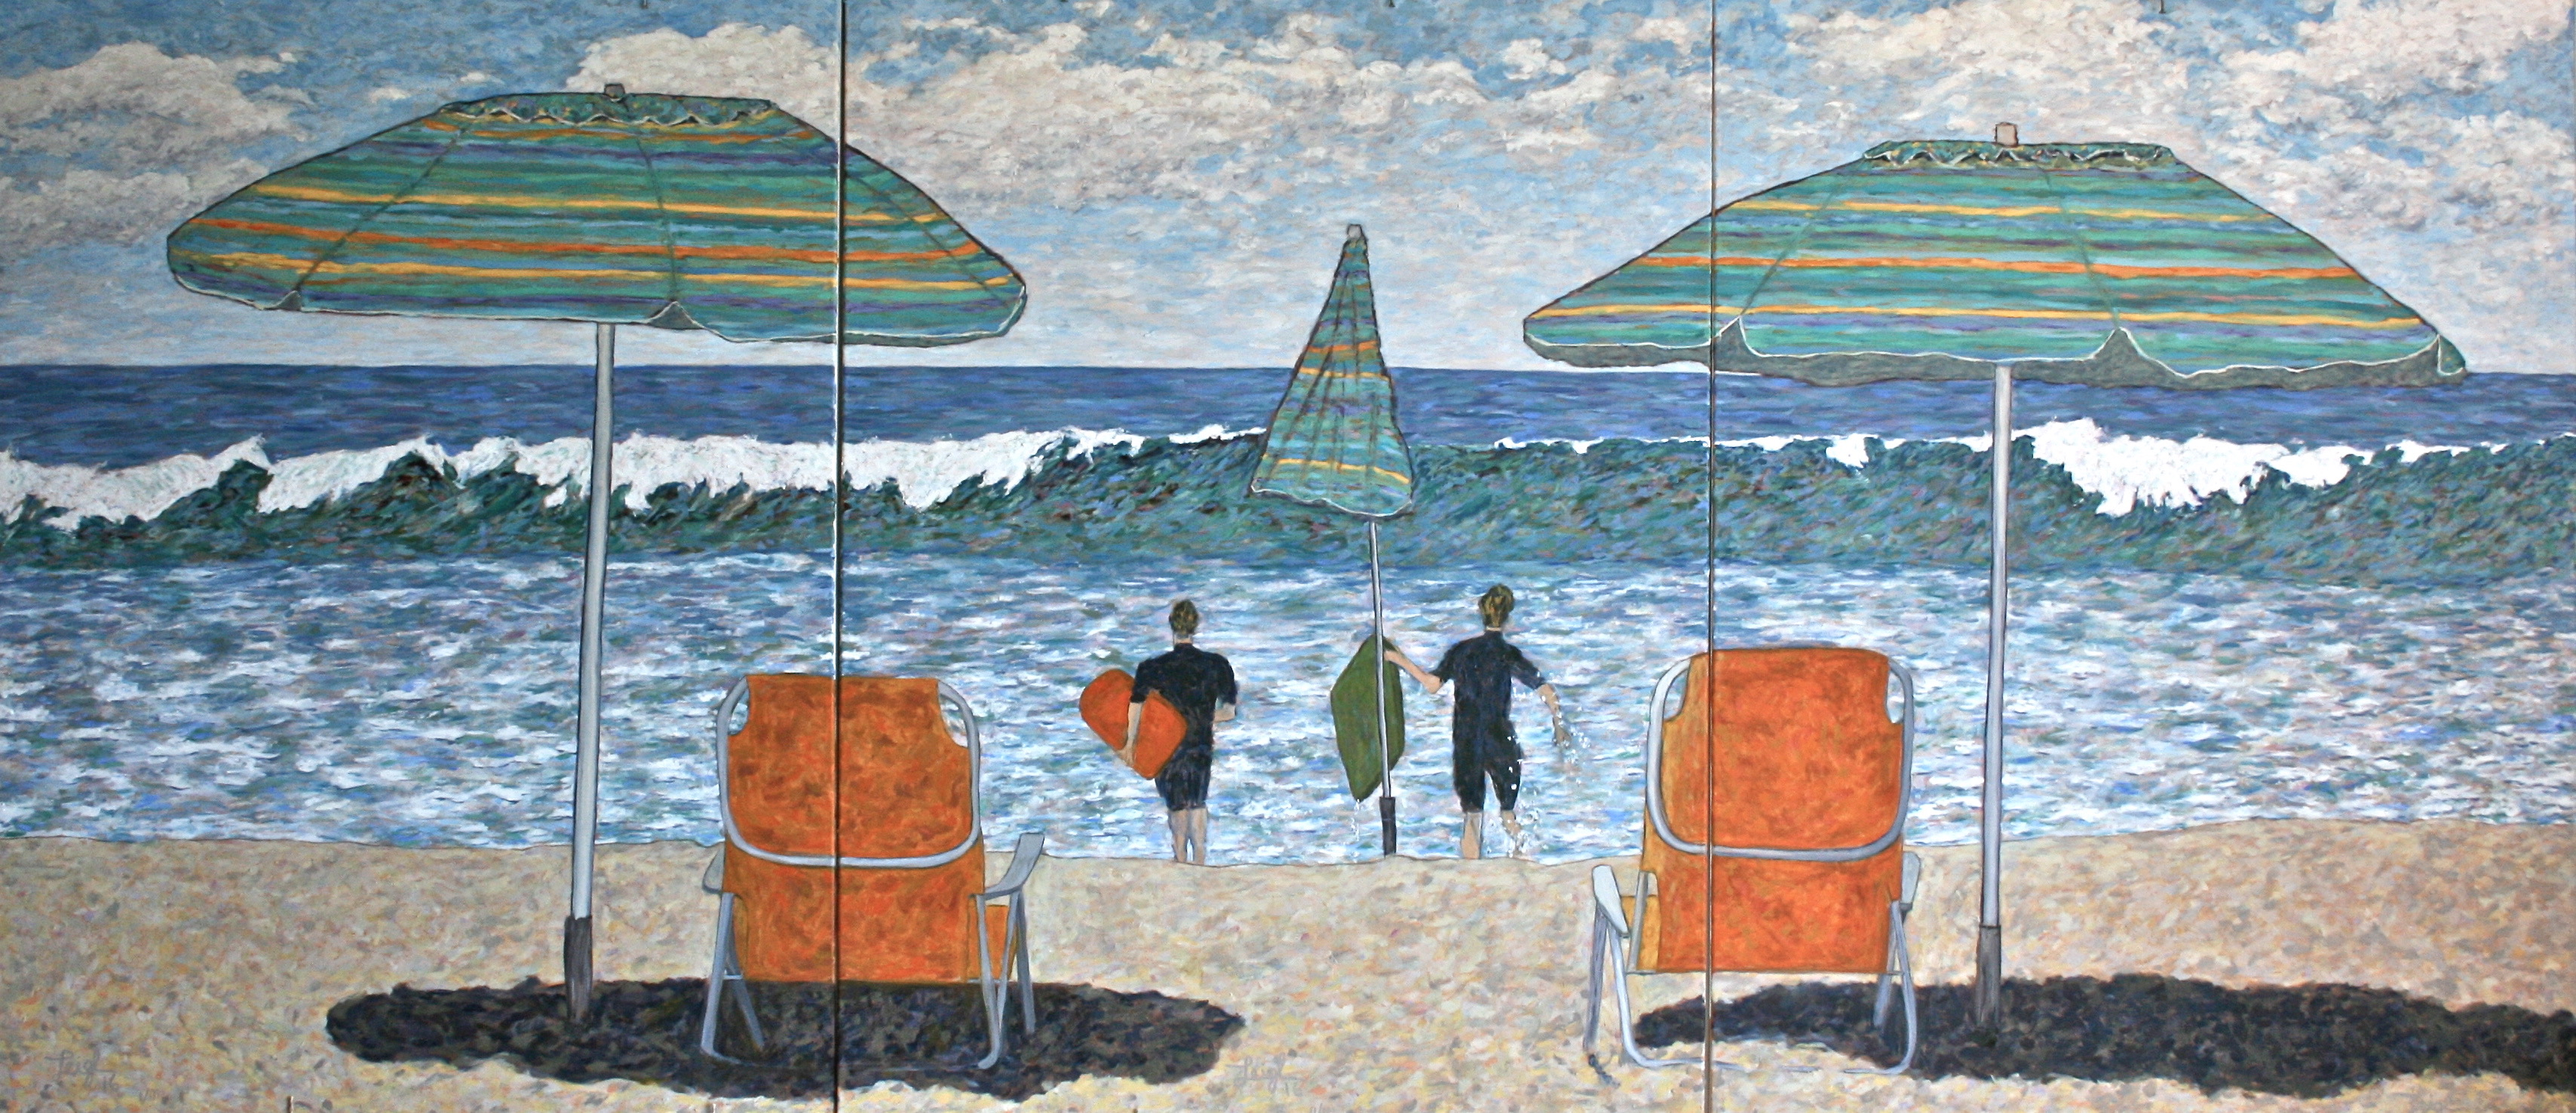 Carlsbad Beach Summer  ~   Jefferey & Diana Schaefer, Encinitas, CA 2016  •  108 x 48 (3 canvases of 36 x 48)